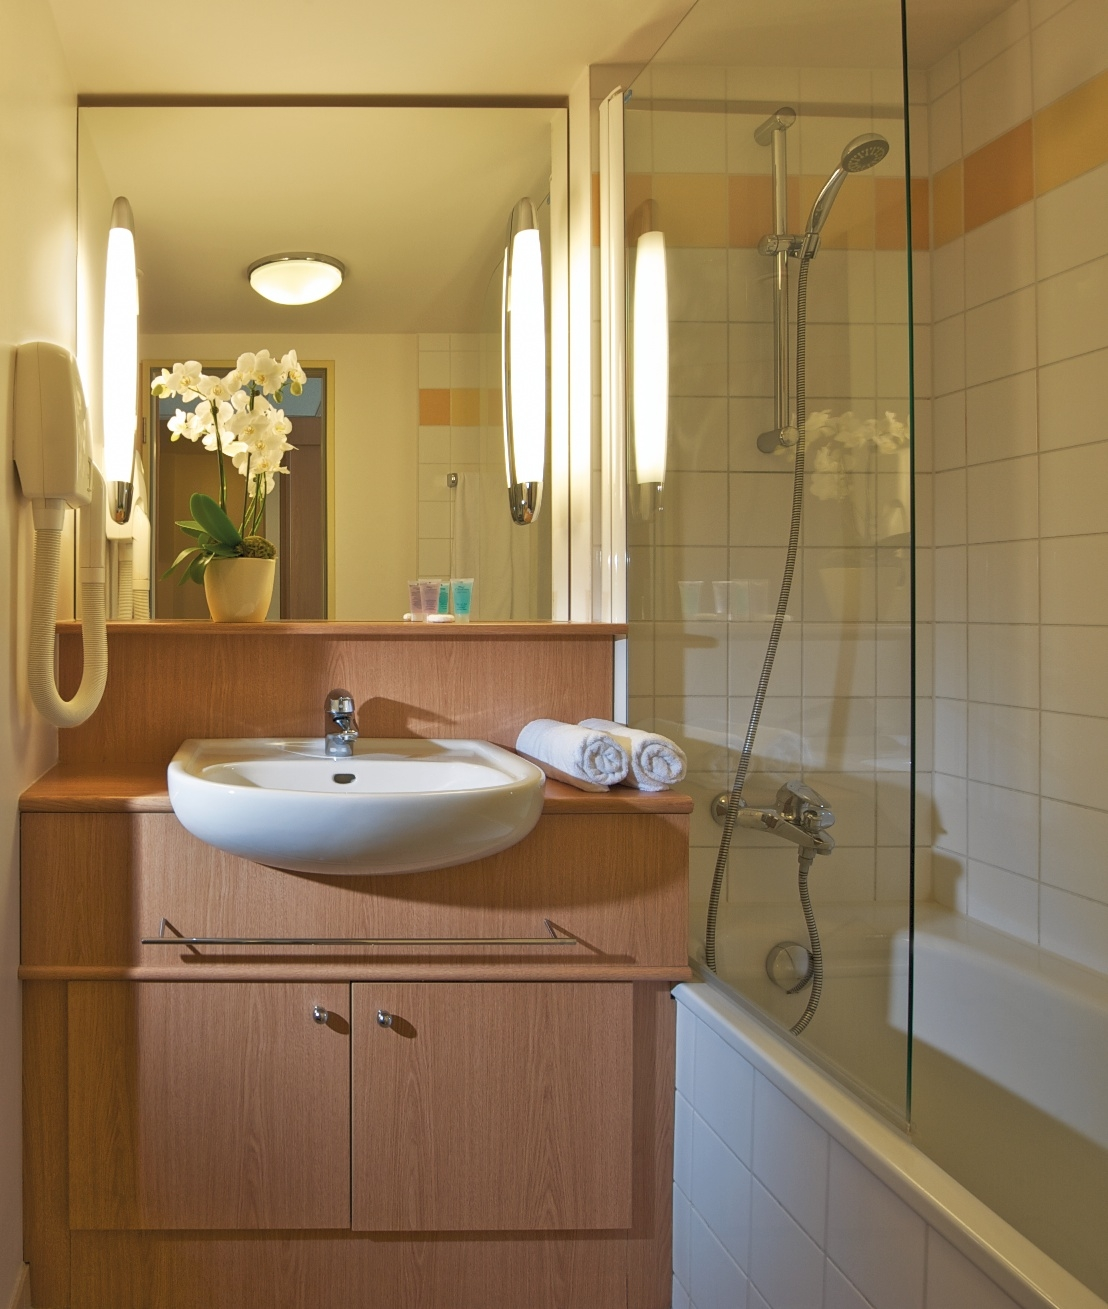 Bathroom Studio Apartment 25 Sq.m. Citadines Berlin Kurfürstendamm